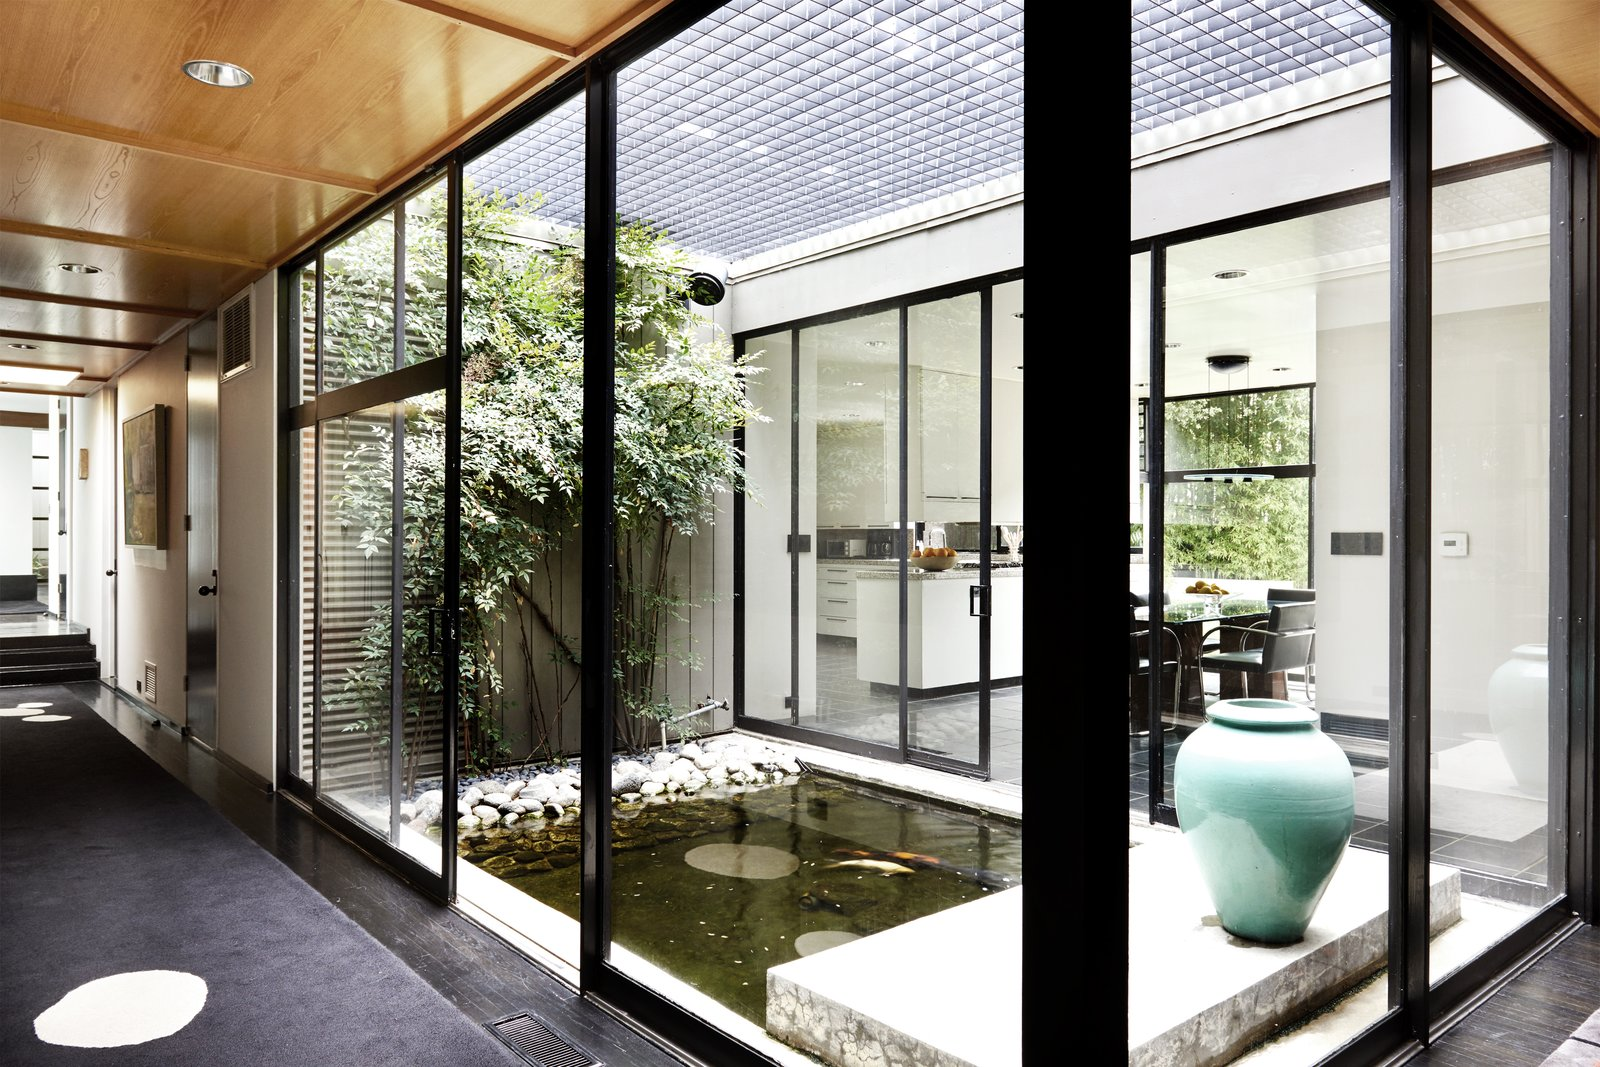 Hallway and Carpet Floor Interior courtyard with a pond.  Photo 9 of 15 in Jerry Bruckheimer Asks $11.9M For This Gem Designed by Thornton Abell